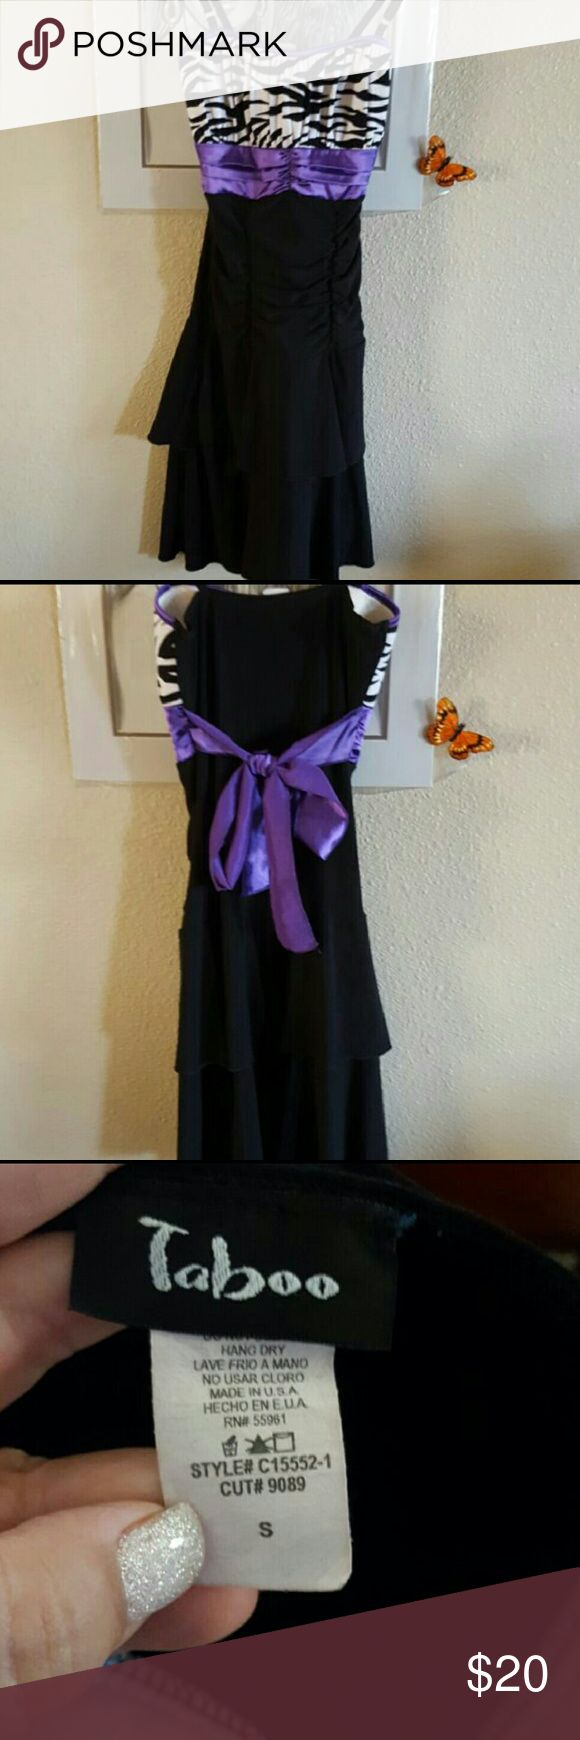 Fun Spaghetti strap dress size small Super fun dress. Can either dress it up or down . Size small. Worn 1 time. Taboo Dresses